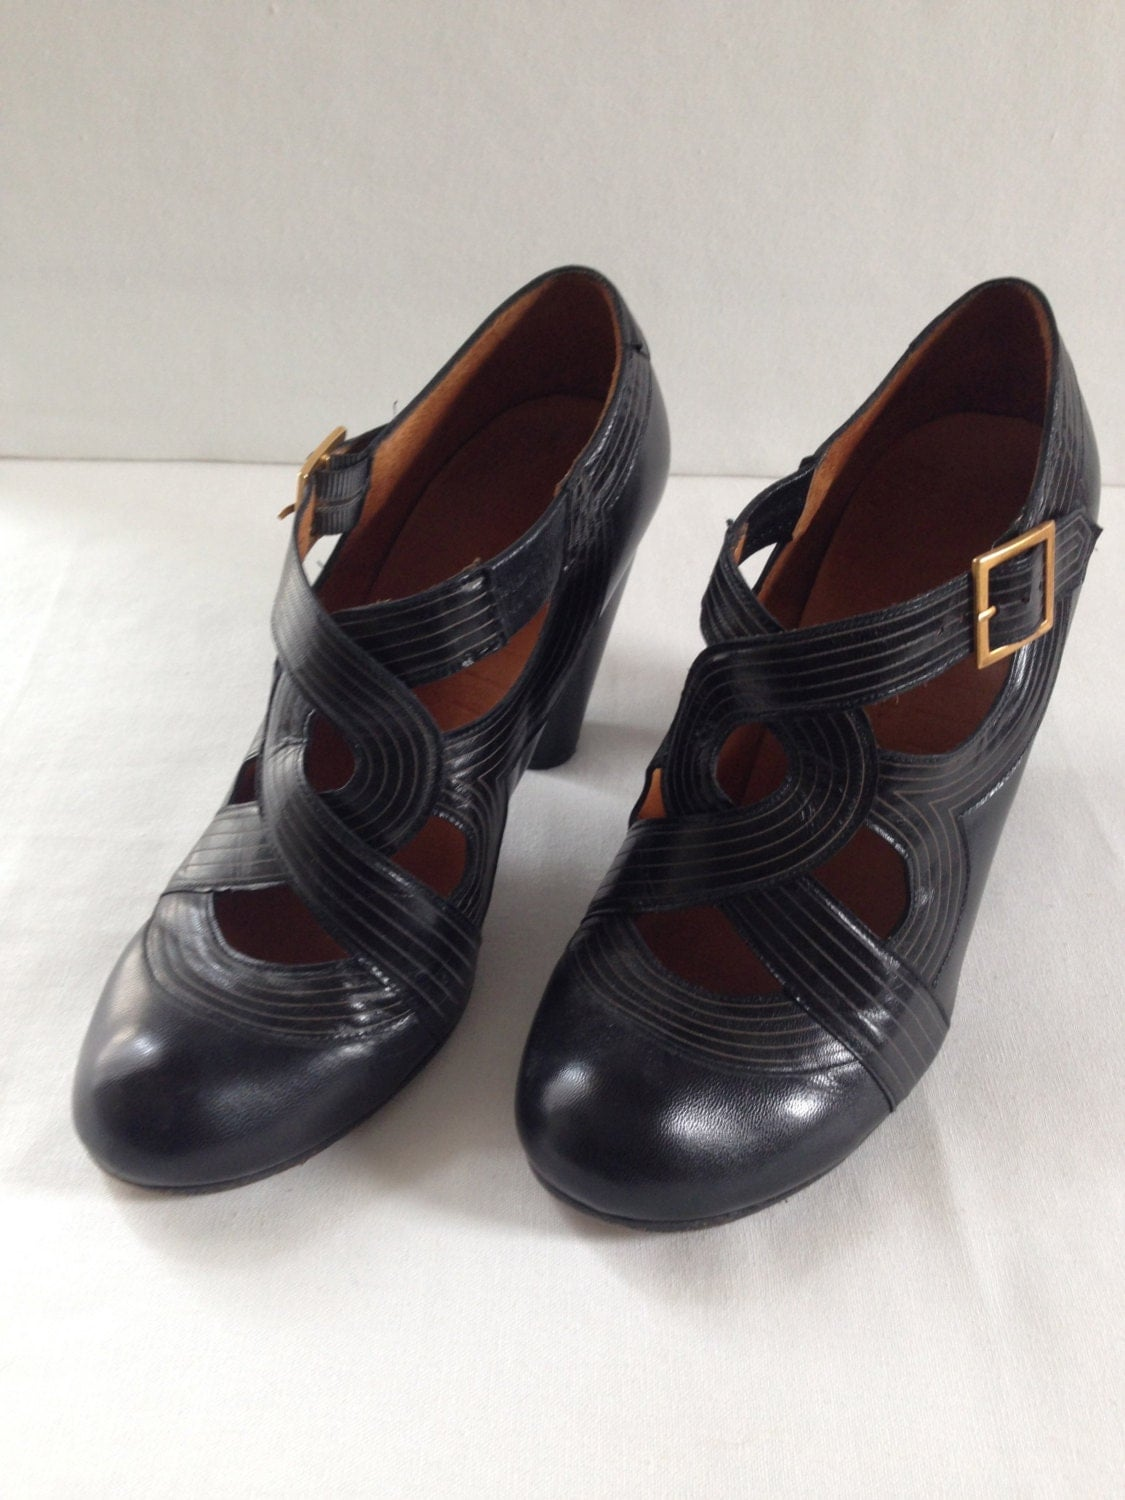 sale chie mihara black mary jane shoes size 38 and 3 5. Black Bedroom Furniture Sets. Home Design Ideas